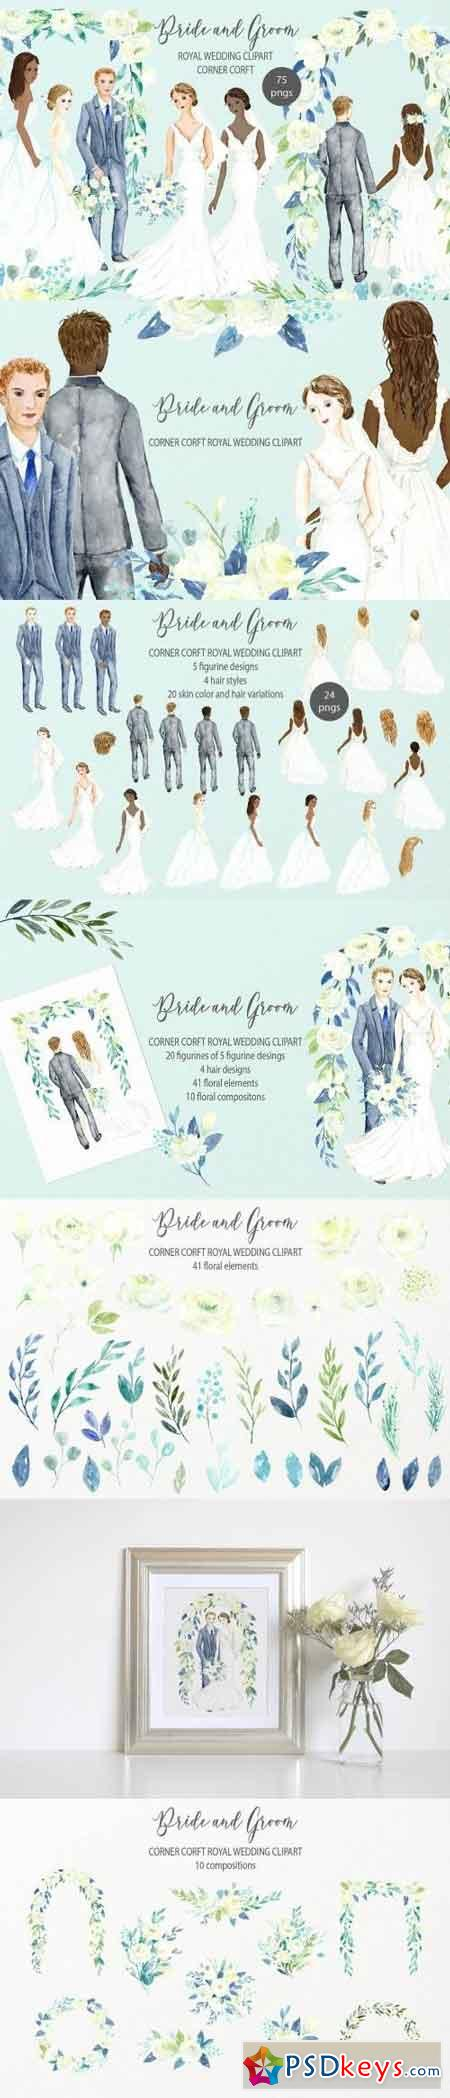 Bride and Groom Royal Wedding Clipart